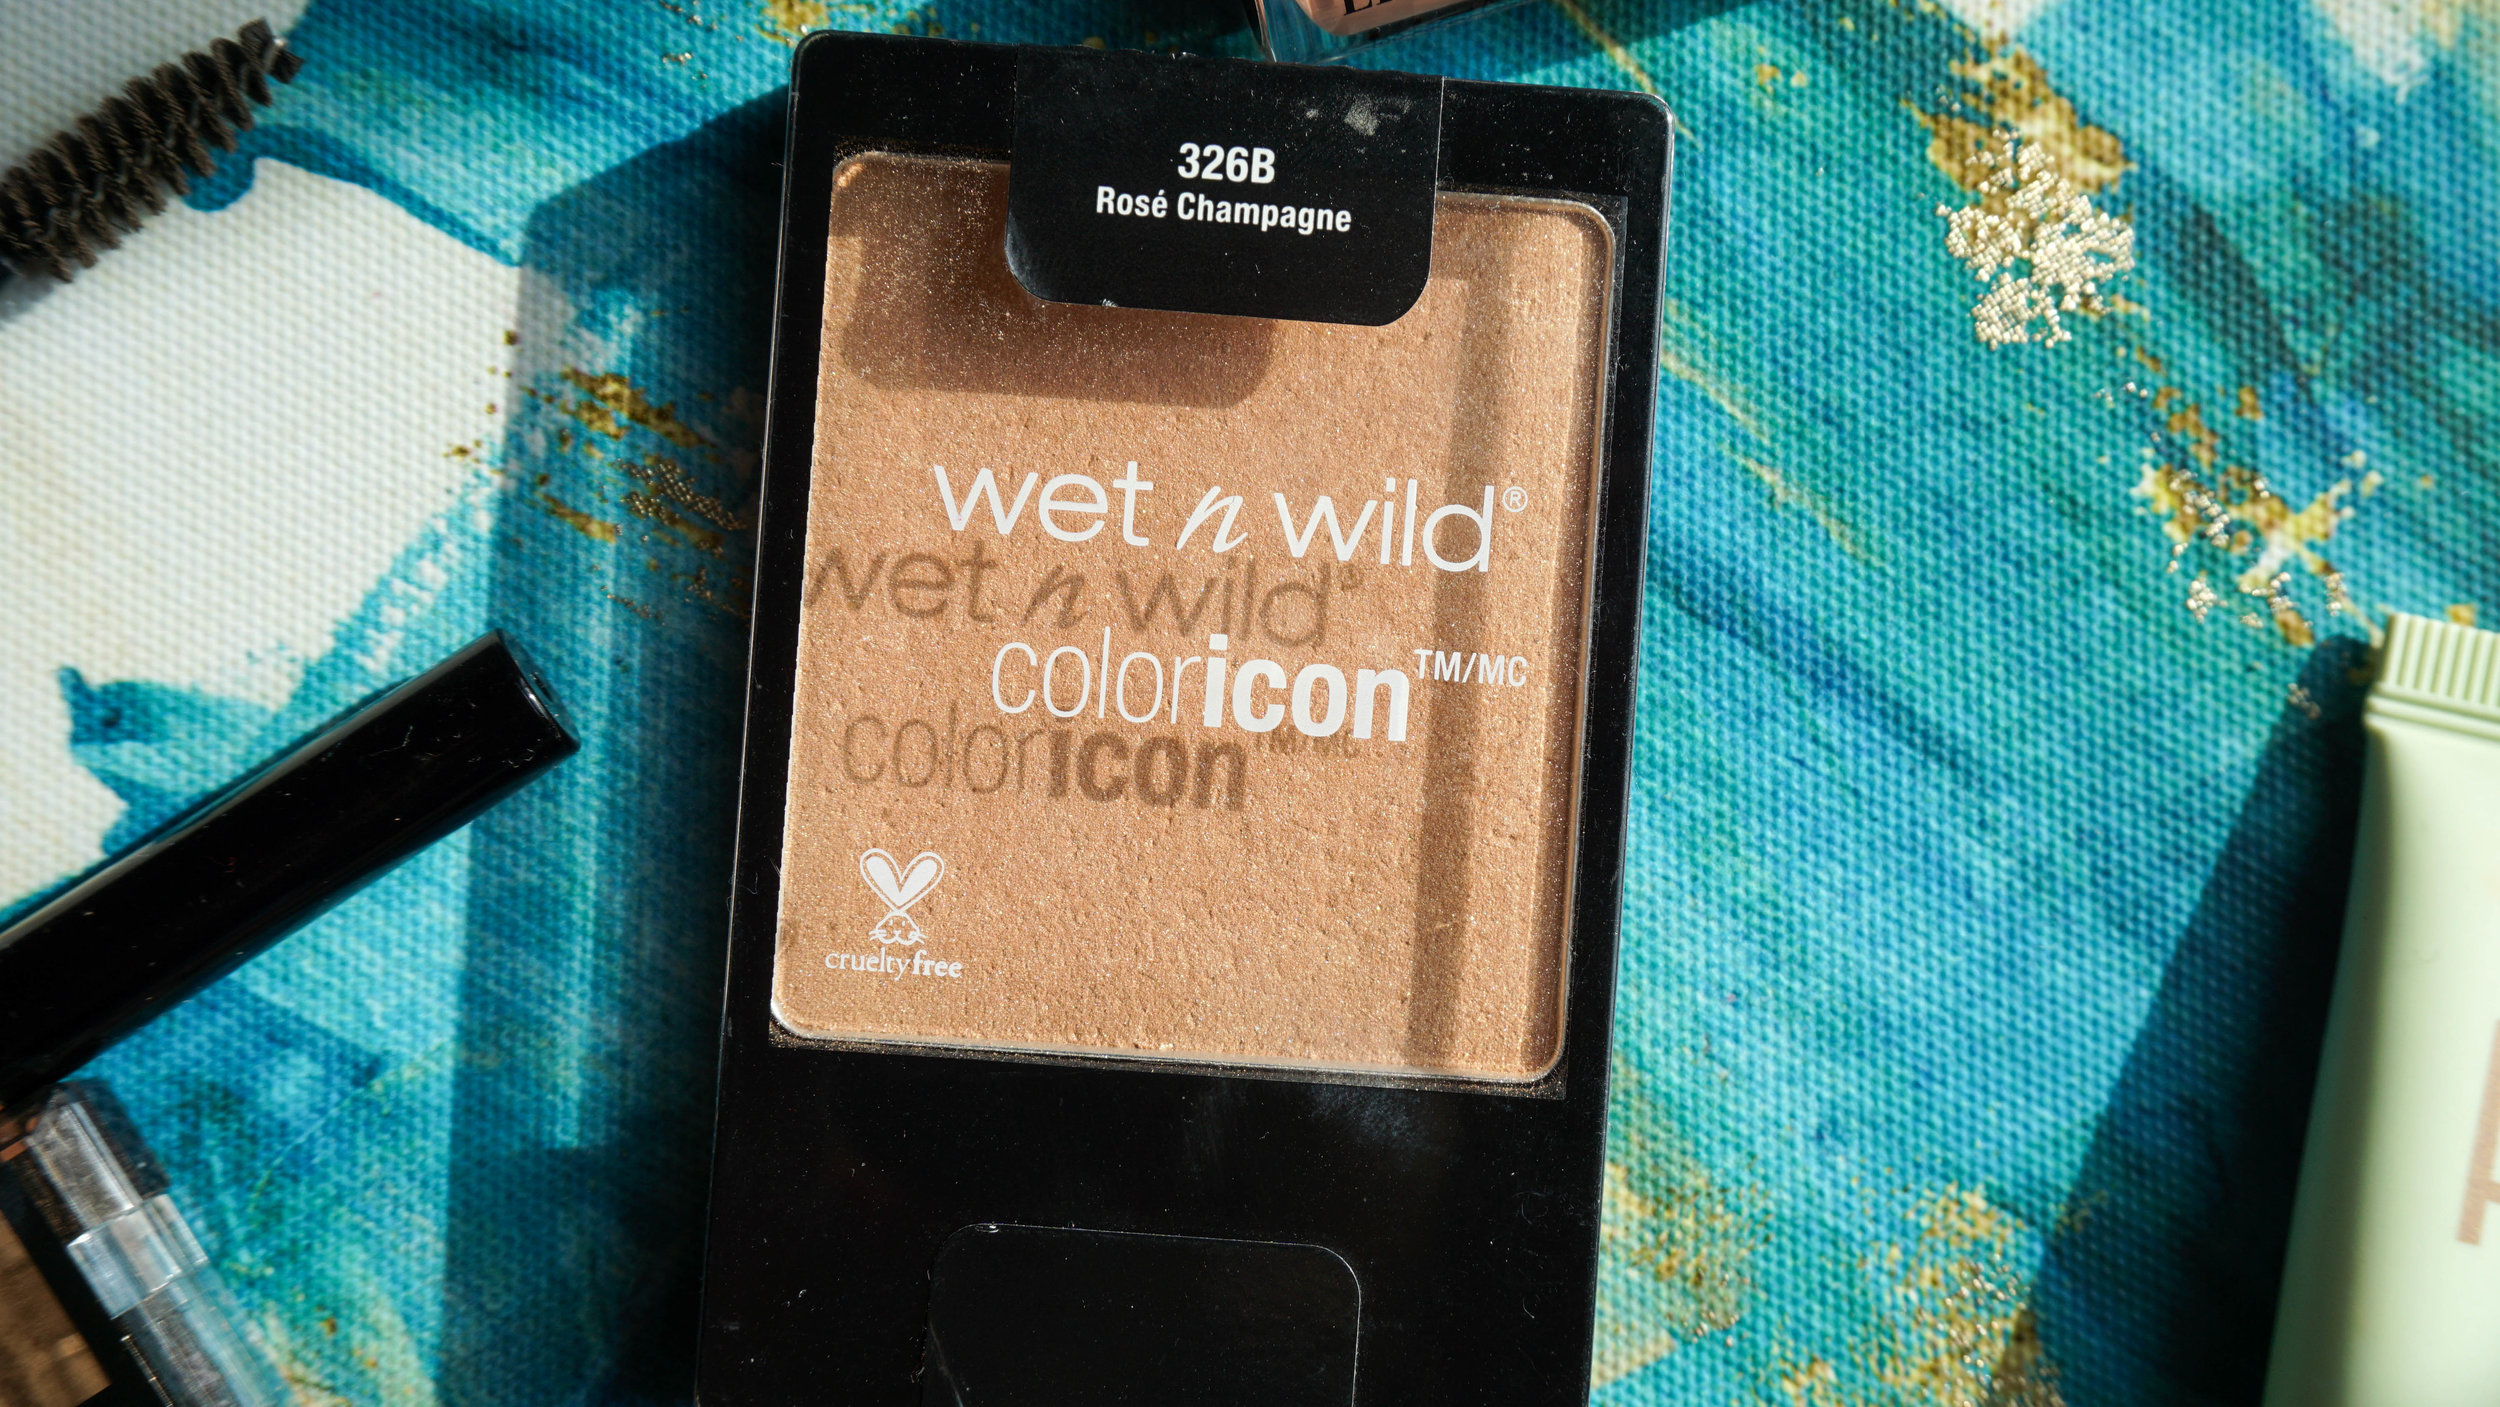 - Wet n Wild Color Icon Blush in 326B Rose Champagne